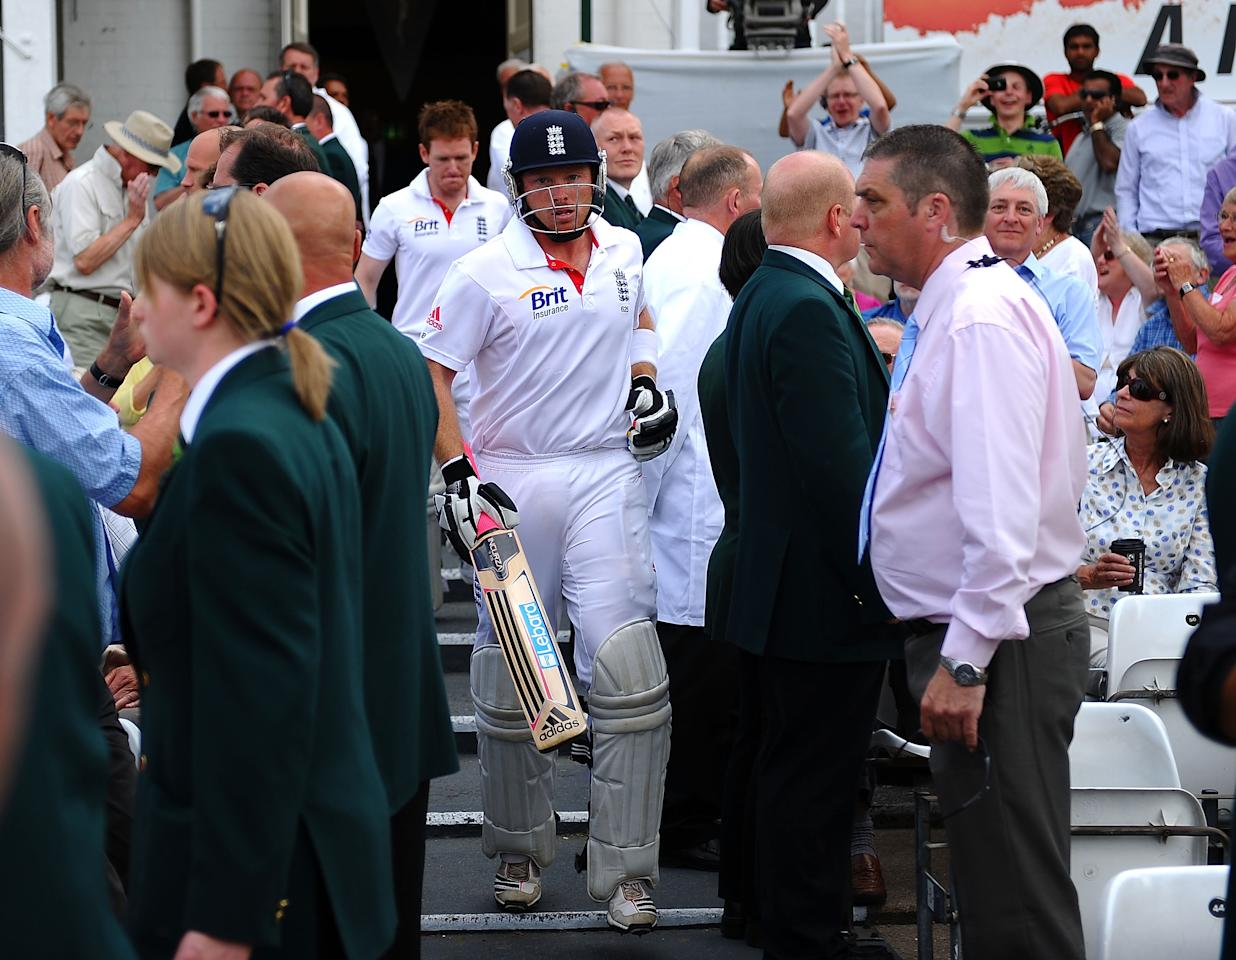 NOTTINGHAM, ENGLAND - JULY 31: Ian Bell of England emerges from tea after being re instated after being given run out on the stroke of tea during the second npower Test match between England and India at Trent Bridge on July 31, 2011 in Nottingham, England.  (Photo by Laurence Griffiths/Getty Images)